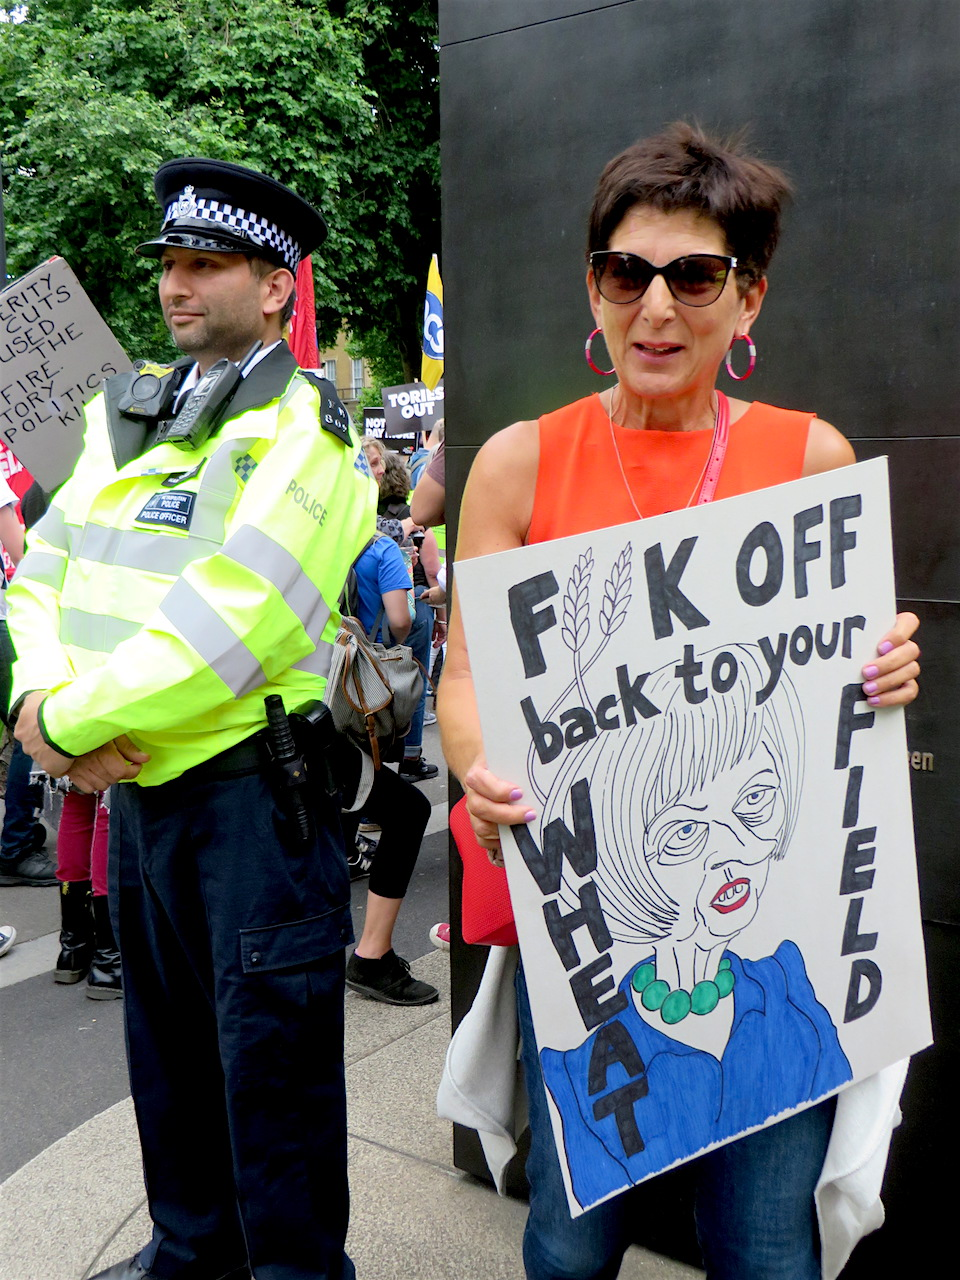 """F*ck off back to your wheat field"": a great placard from the 'Not One Day More' protest against Theresa May and the Tories in London on July 1, 2017 (Photo: Andy Worthington)."